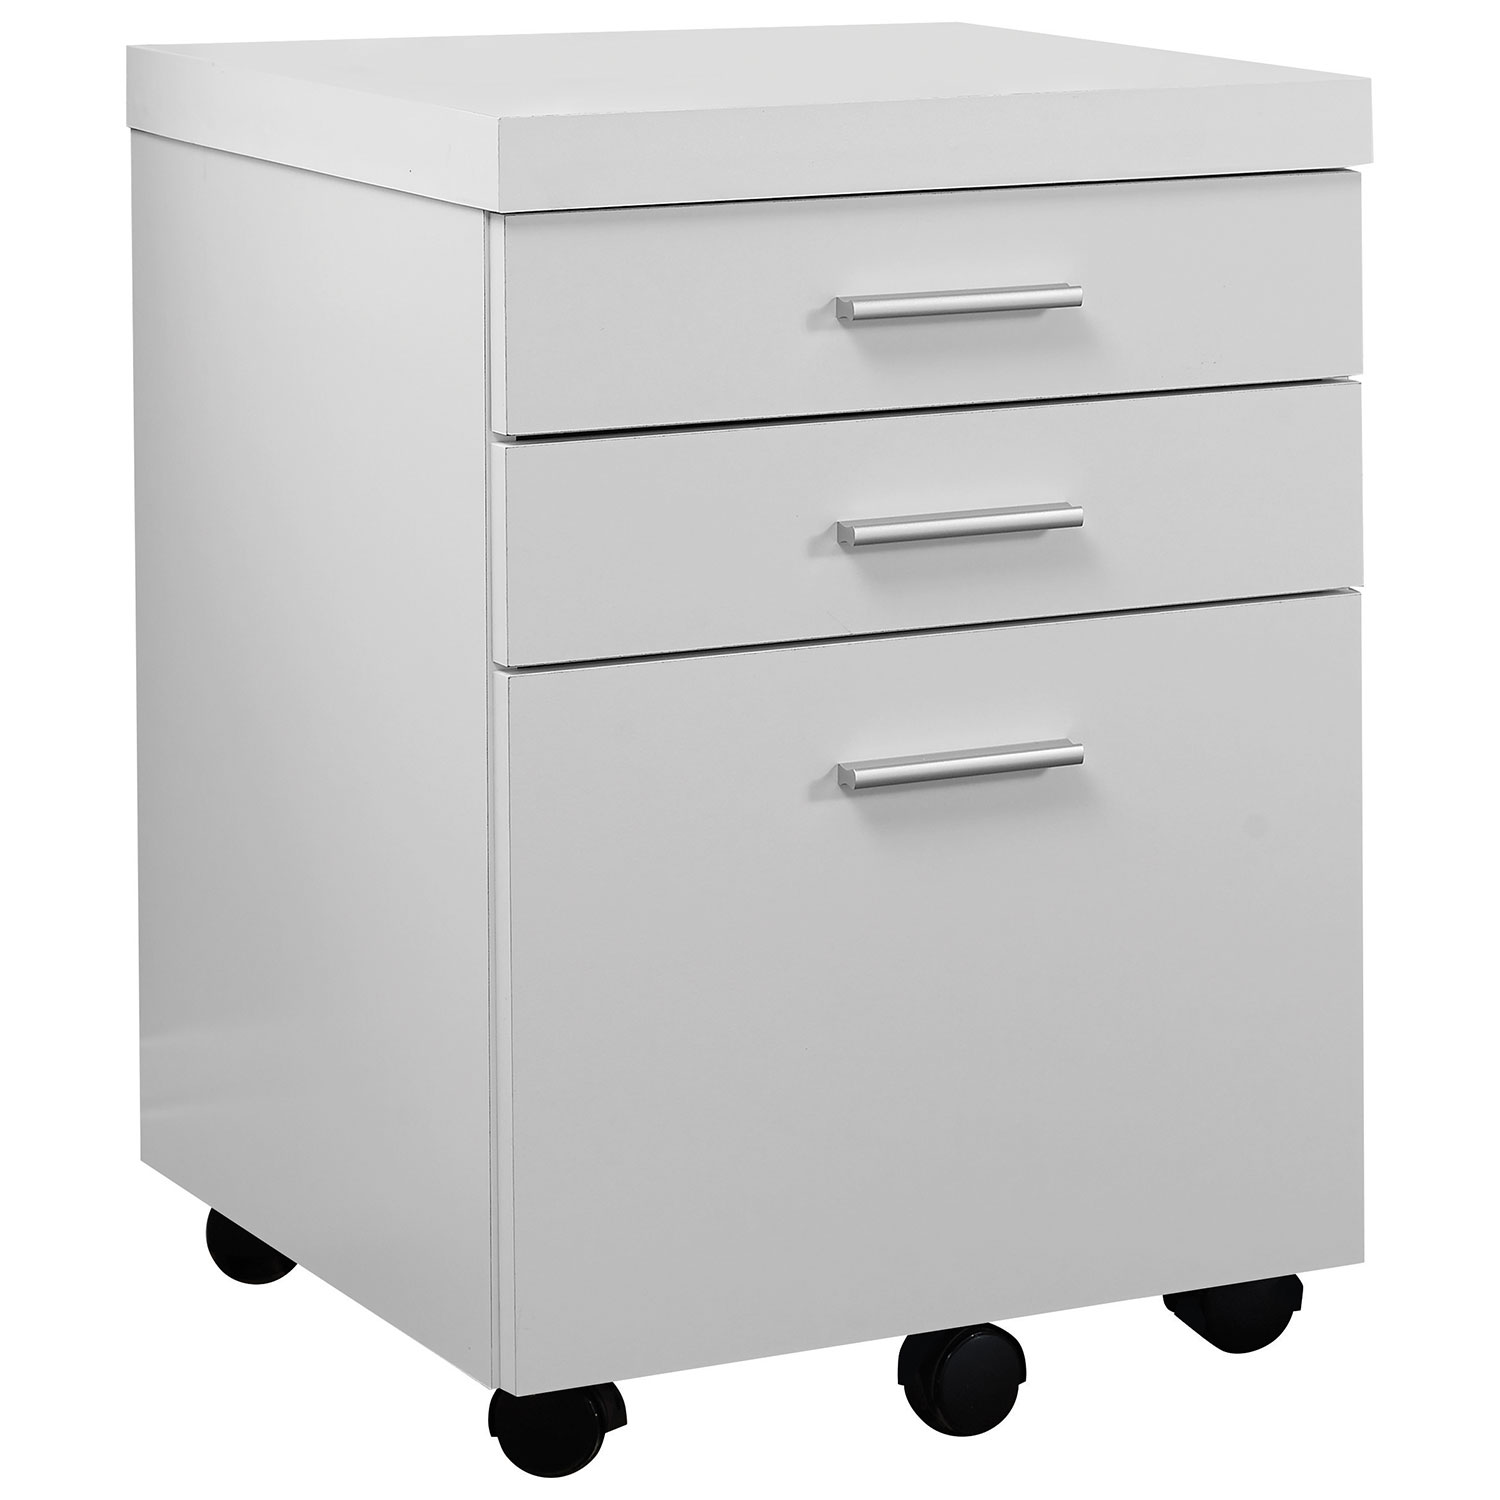 Monarch 3-Drawer Vertical File Cabinet - White : Filing Cabinets ...